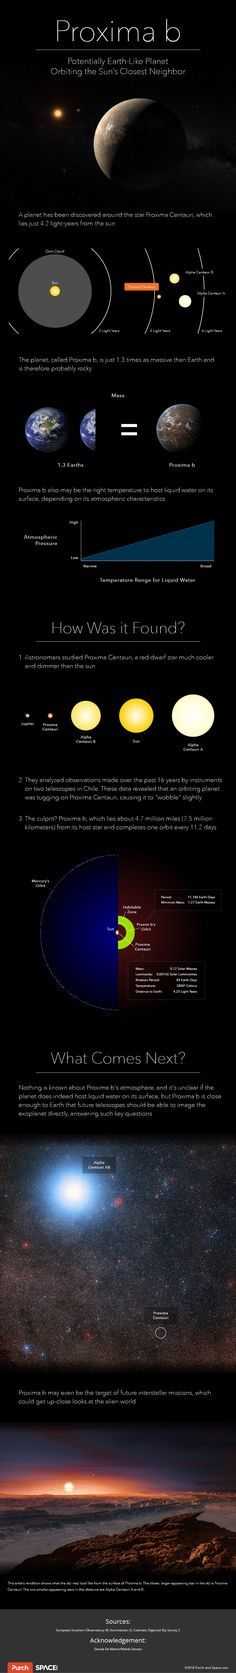 August 2016, astronomers announced that a potentially Earth-like planet orbits…